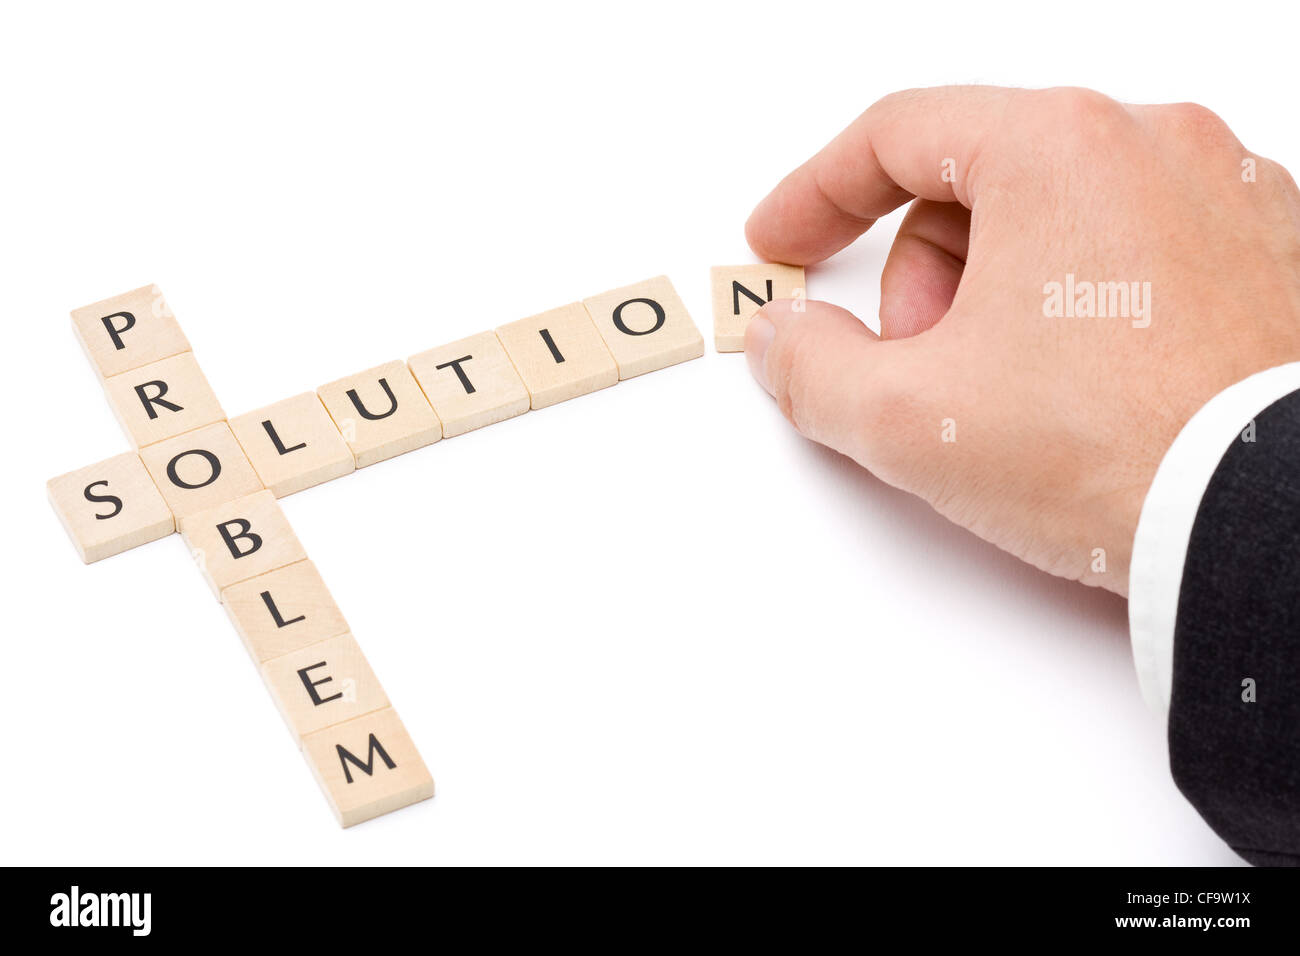 Business man building solution from problem over white background - Stock Image